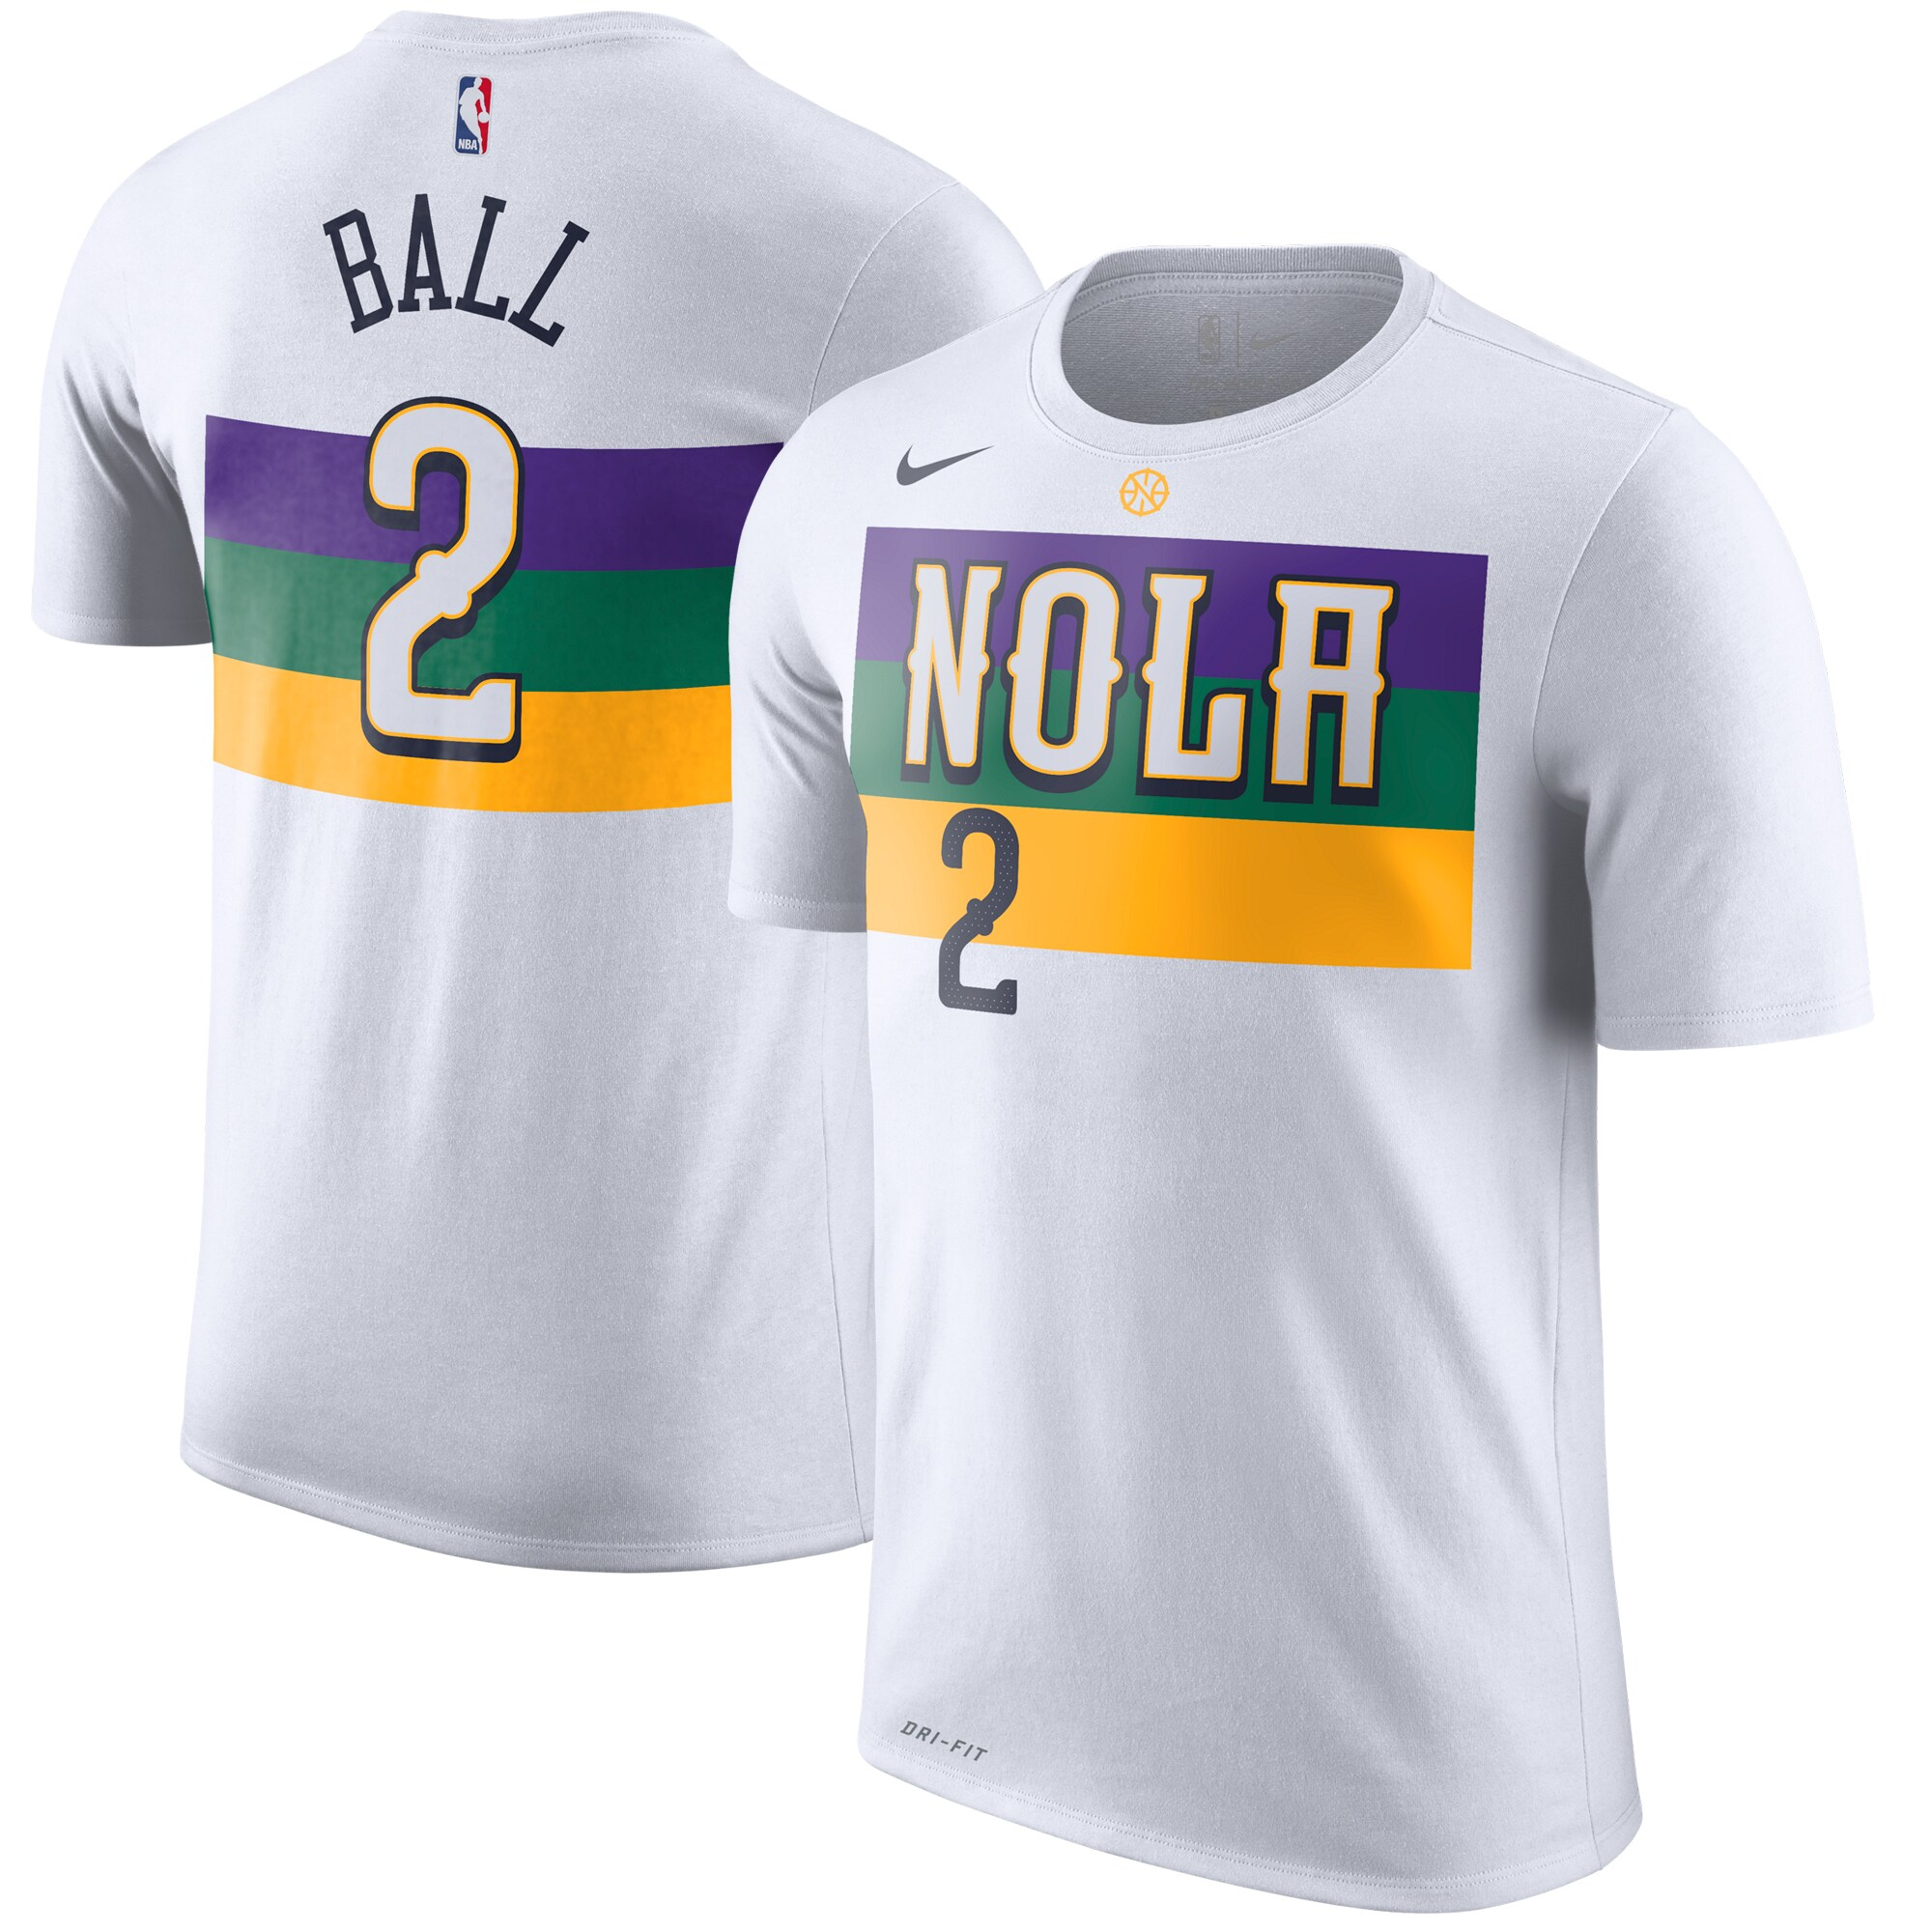 Lonzo Ball New Orleans Pelicans Nike 2019/20 City Edition Name & Number T-Shirt - White